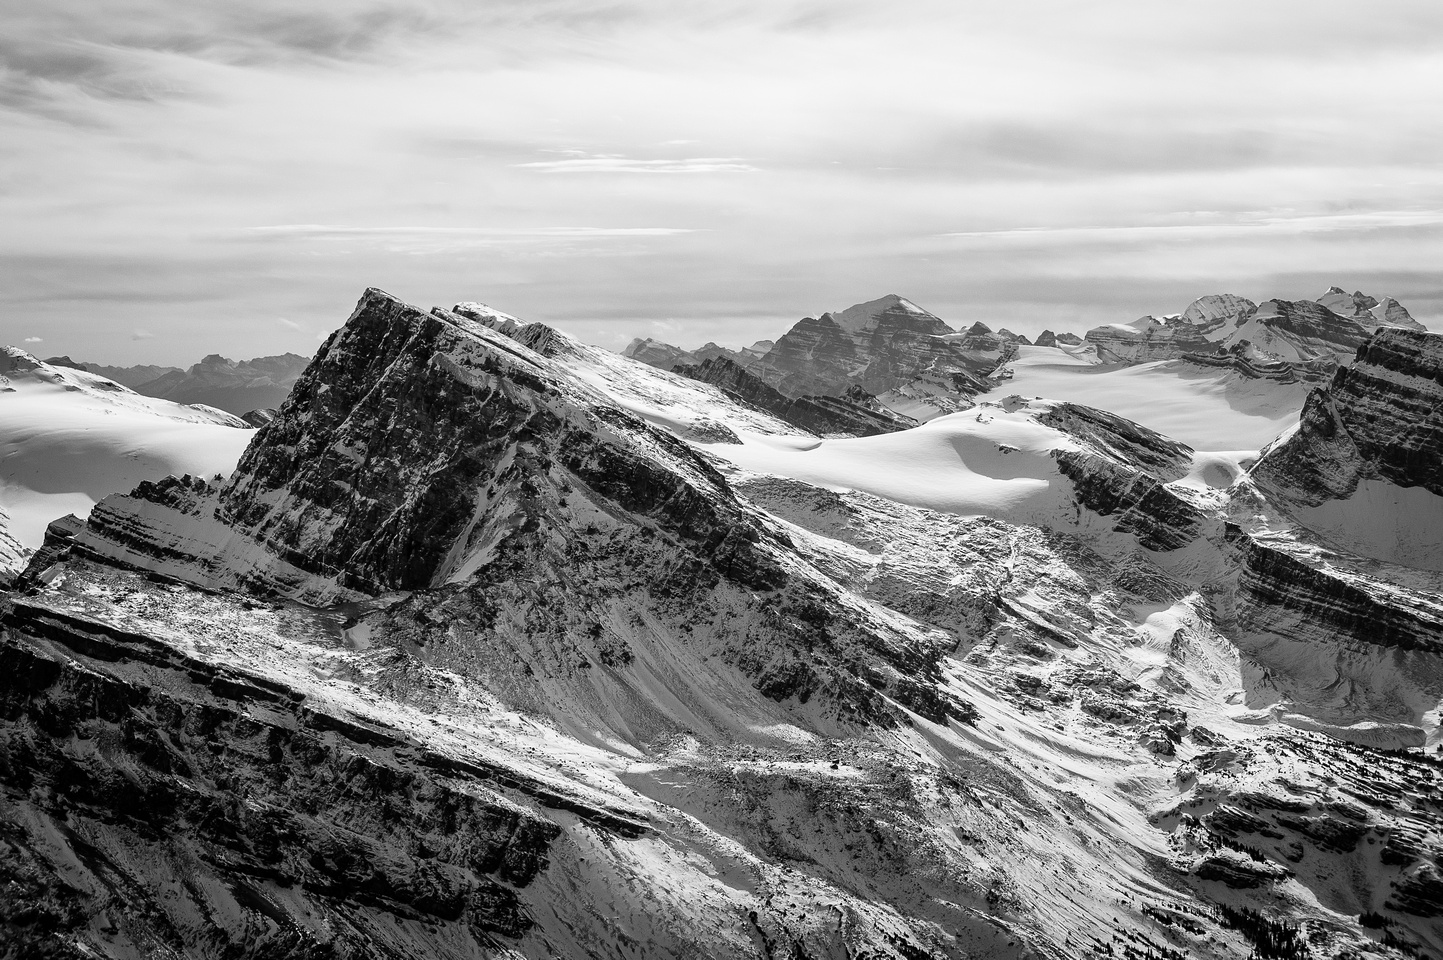 Telephoto over Crowfoot (L) and Little Crowfoot (C) towards Mount Temple.